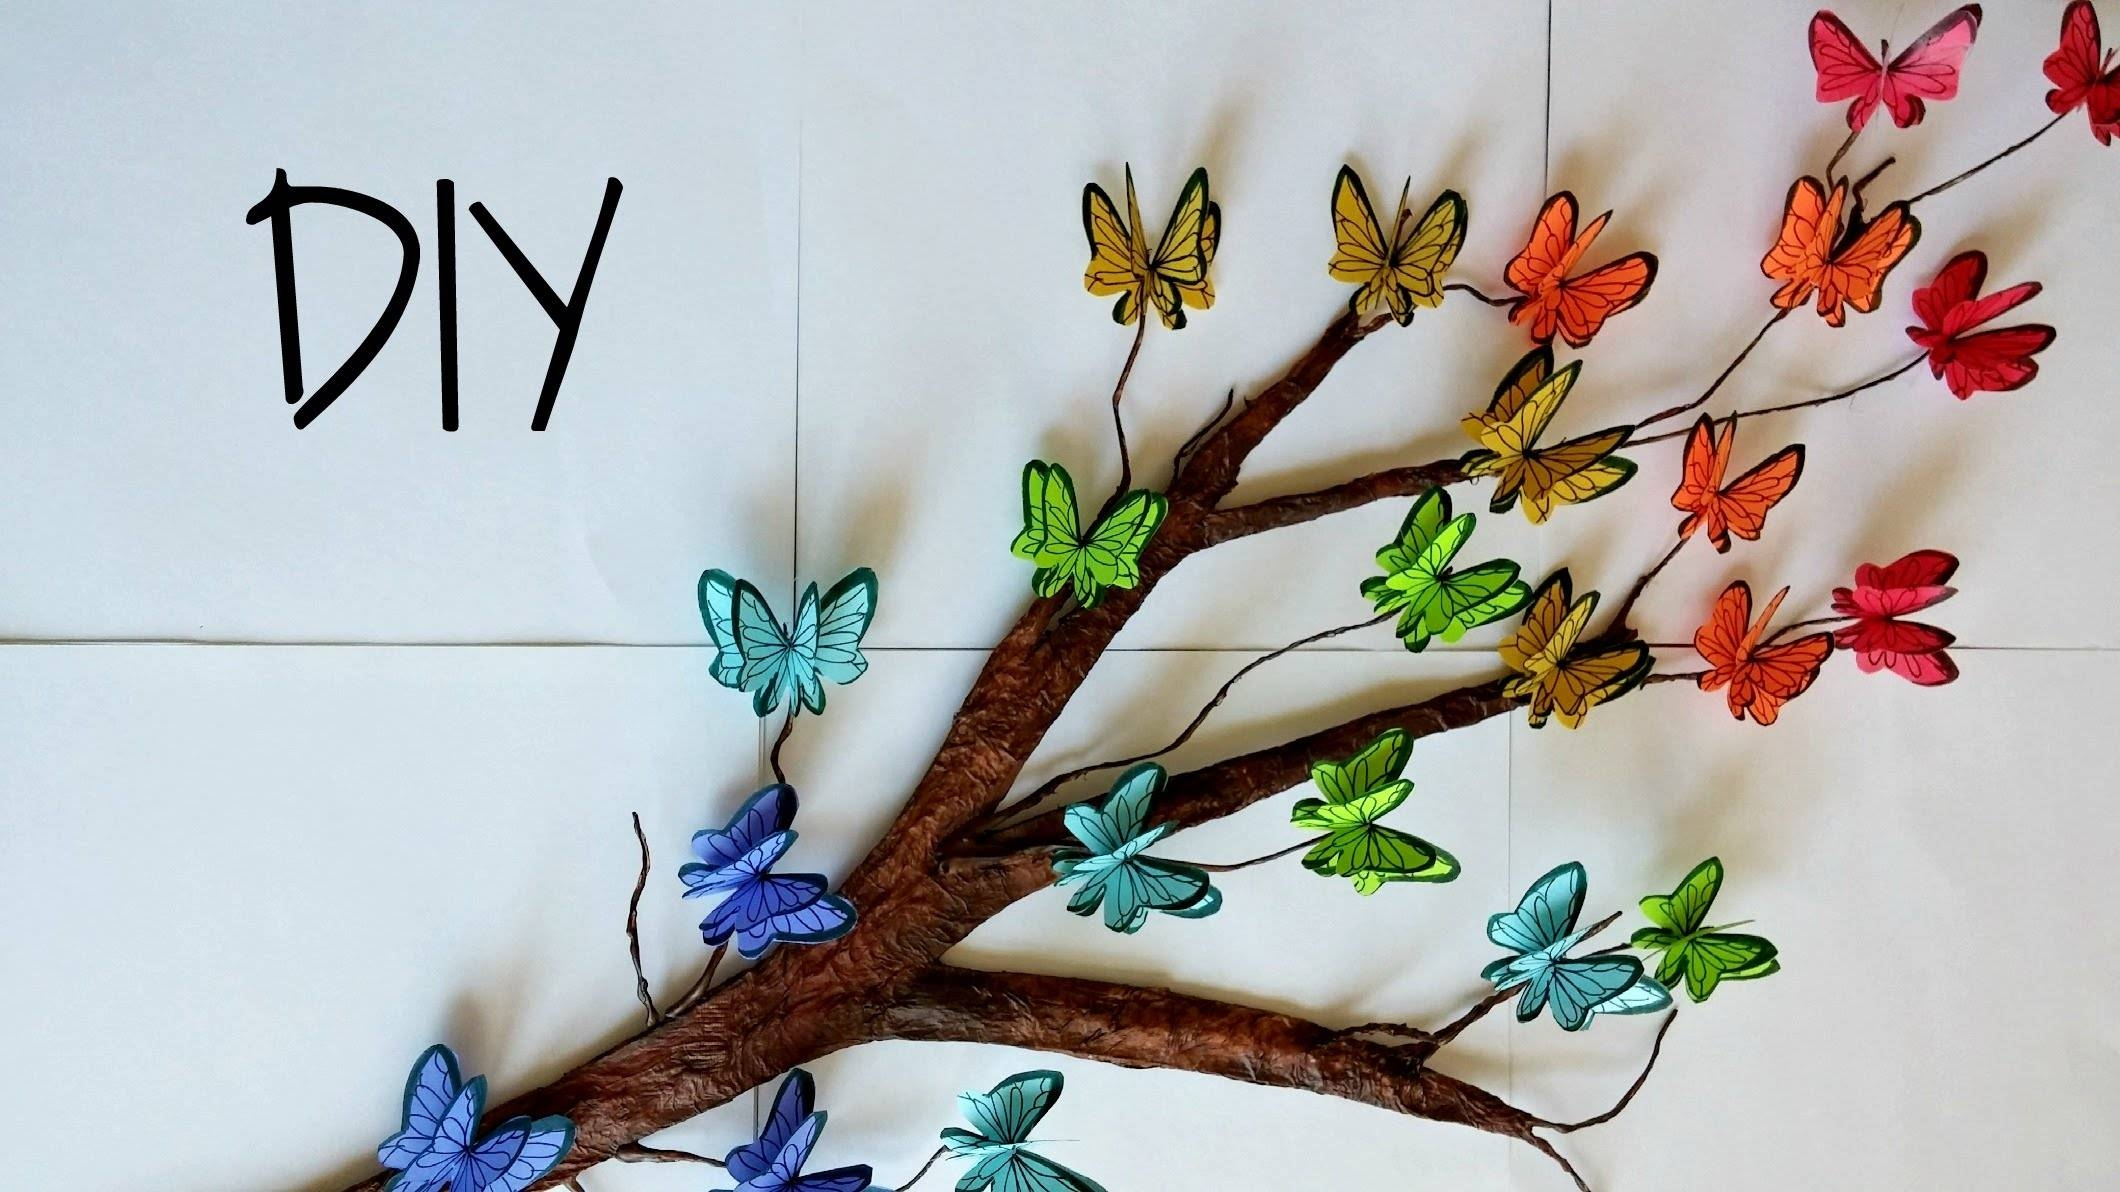 Diy Tree Branch + 3D Butterflies ? // Room Decor – Youtube Intended For Most Recently Released Diy 3D Wall Art Butterflies (View 16 of 20)